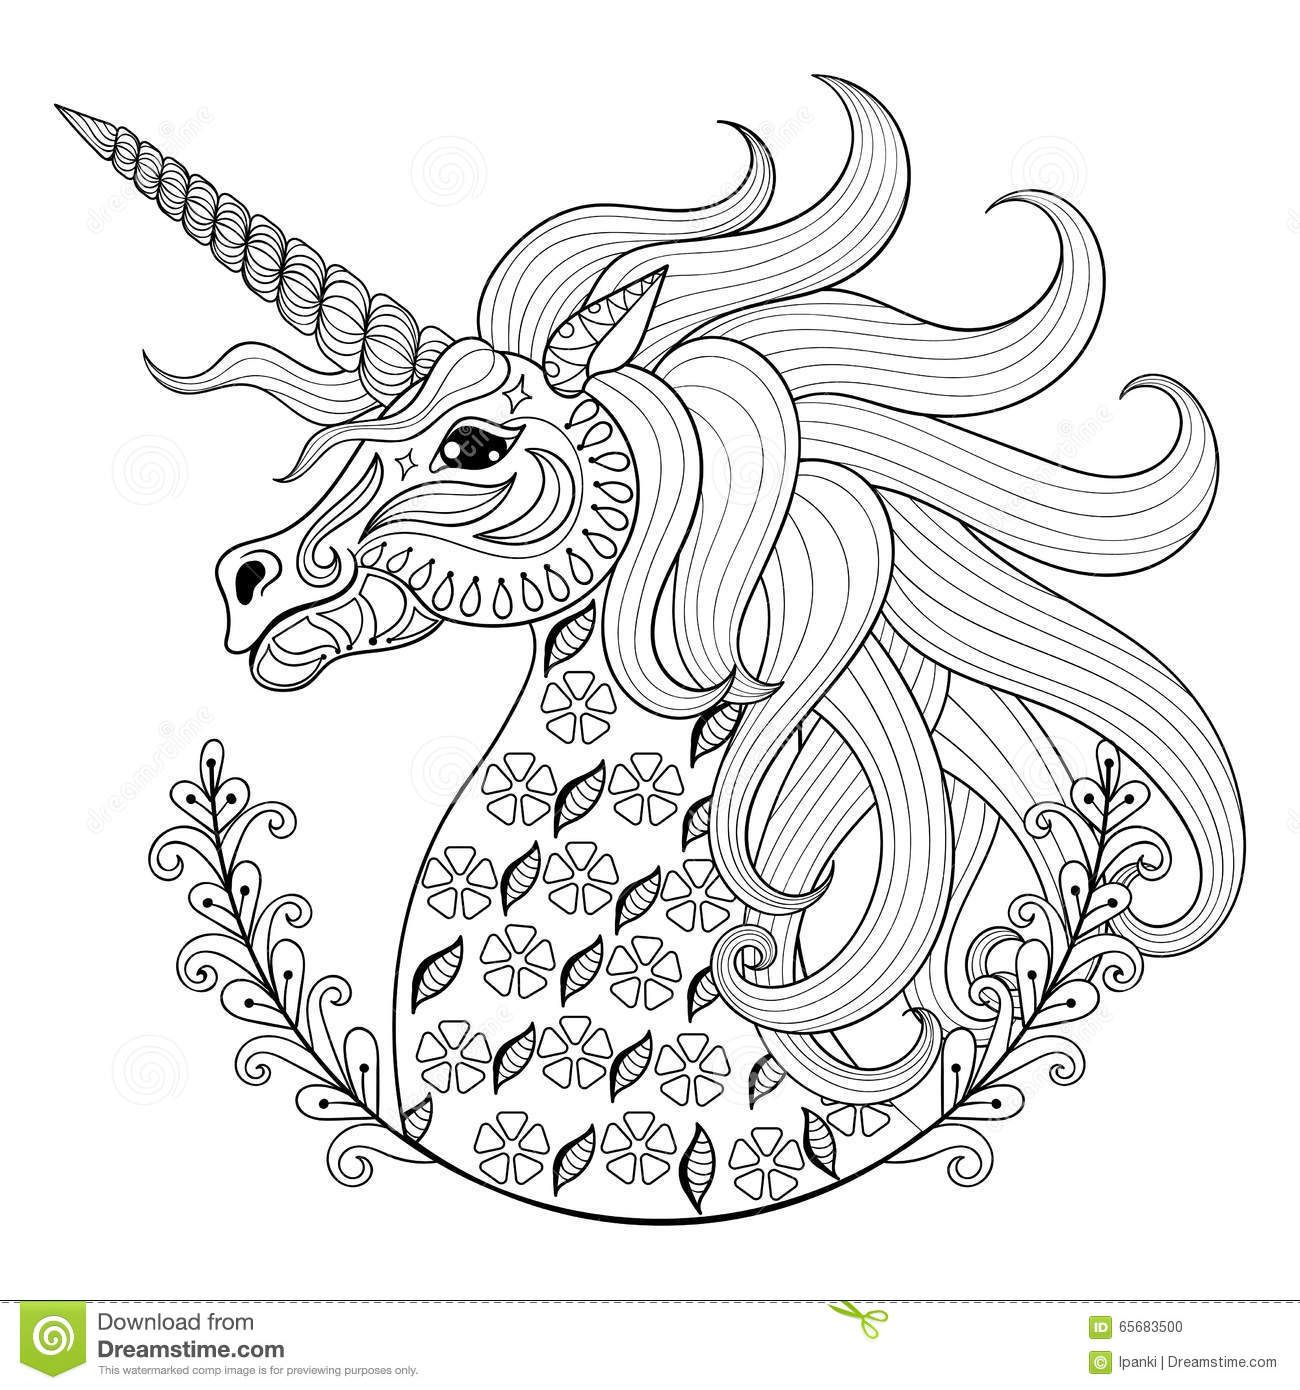 Stress Coloring Pages Animals : Hand drawing unicorn adult anti stress coloring pages